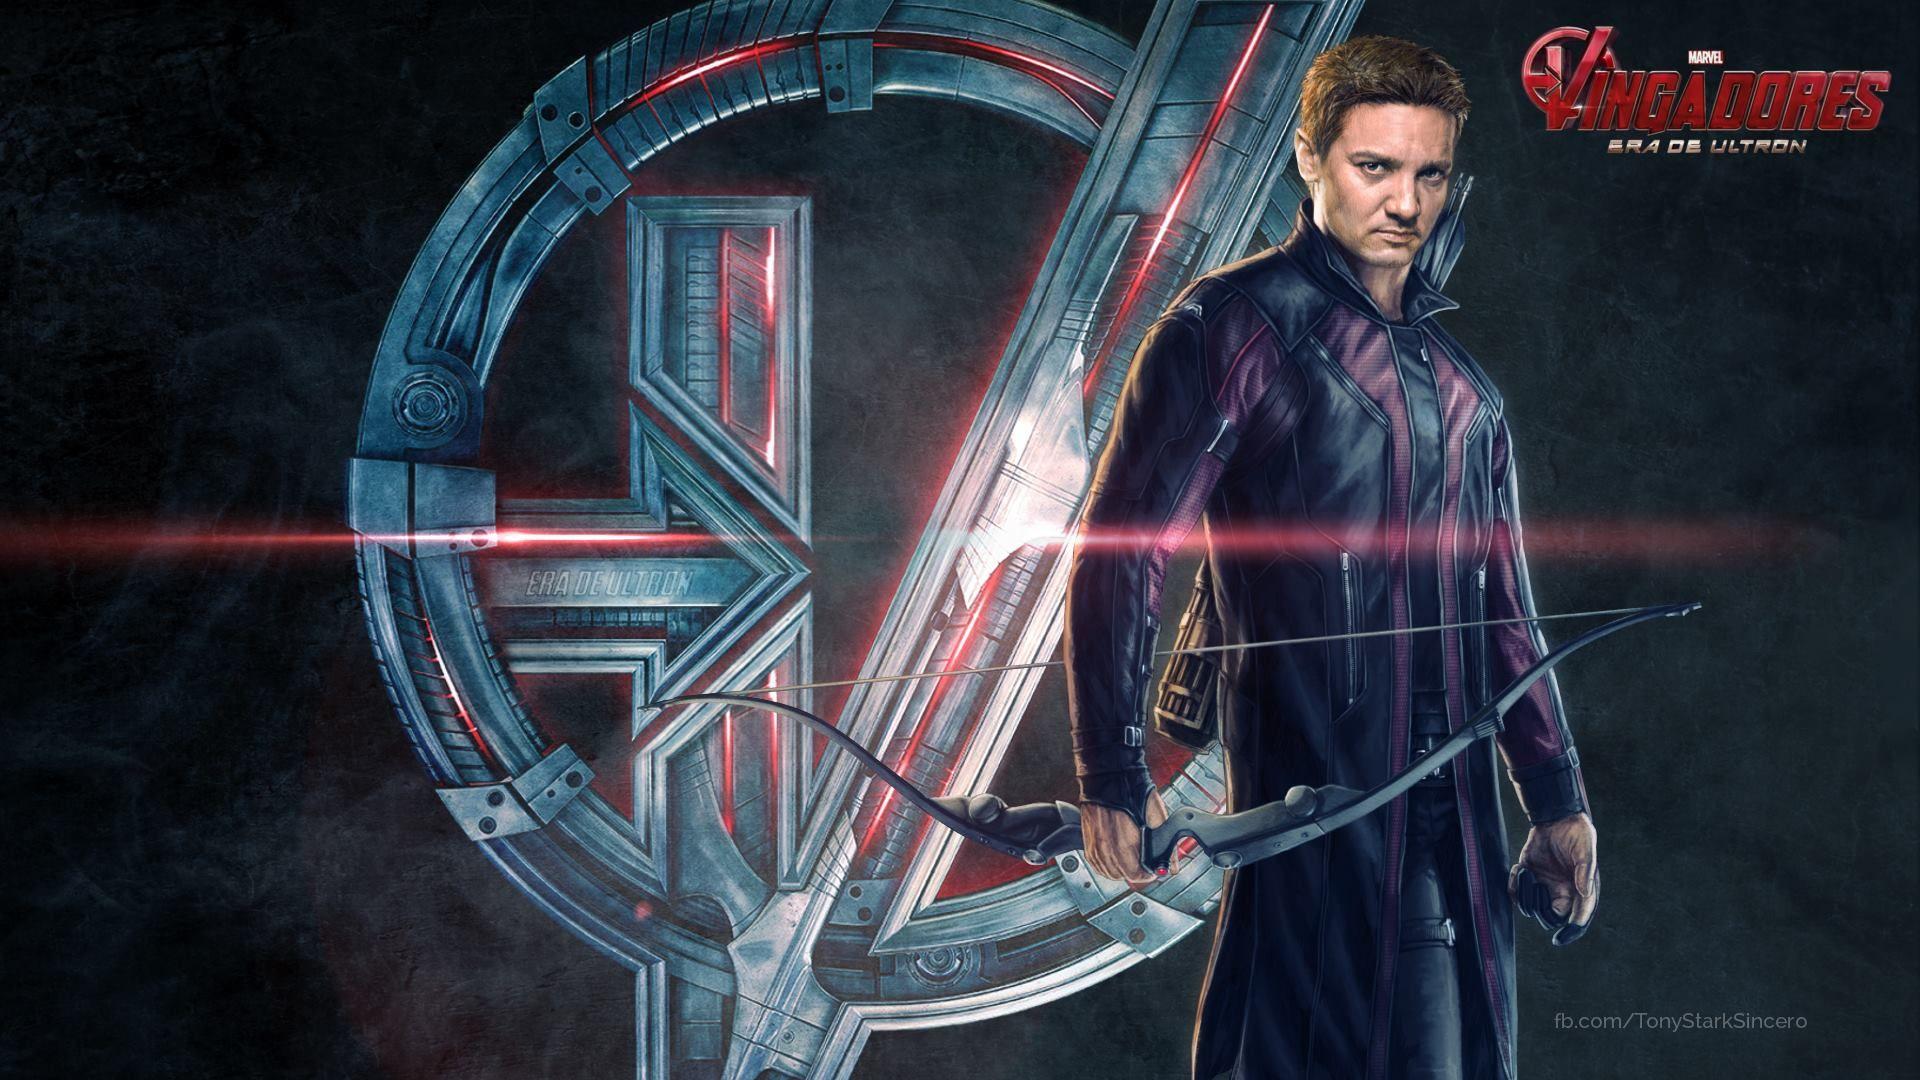 heroes and villain(s) of avengers: age of ultron get stylish promo